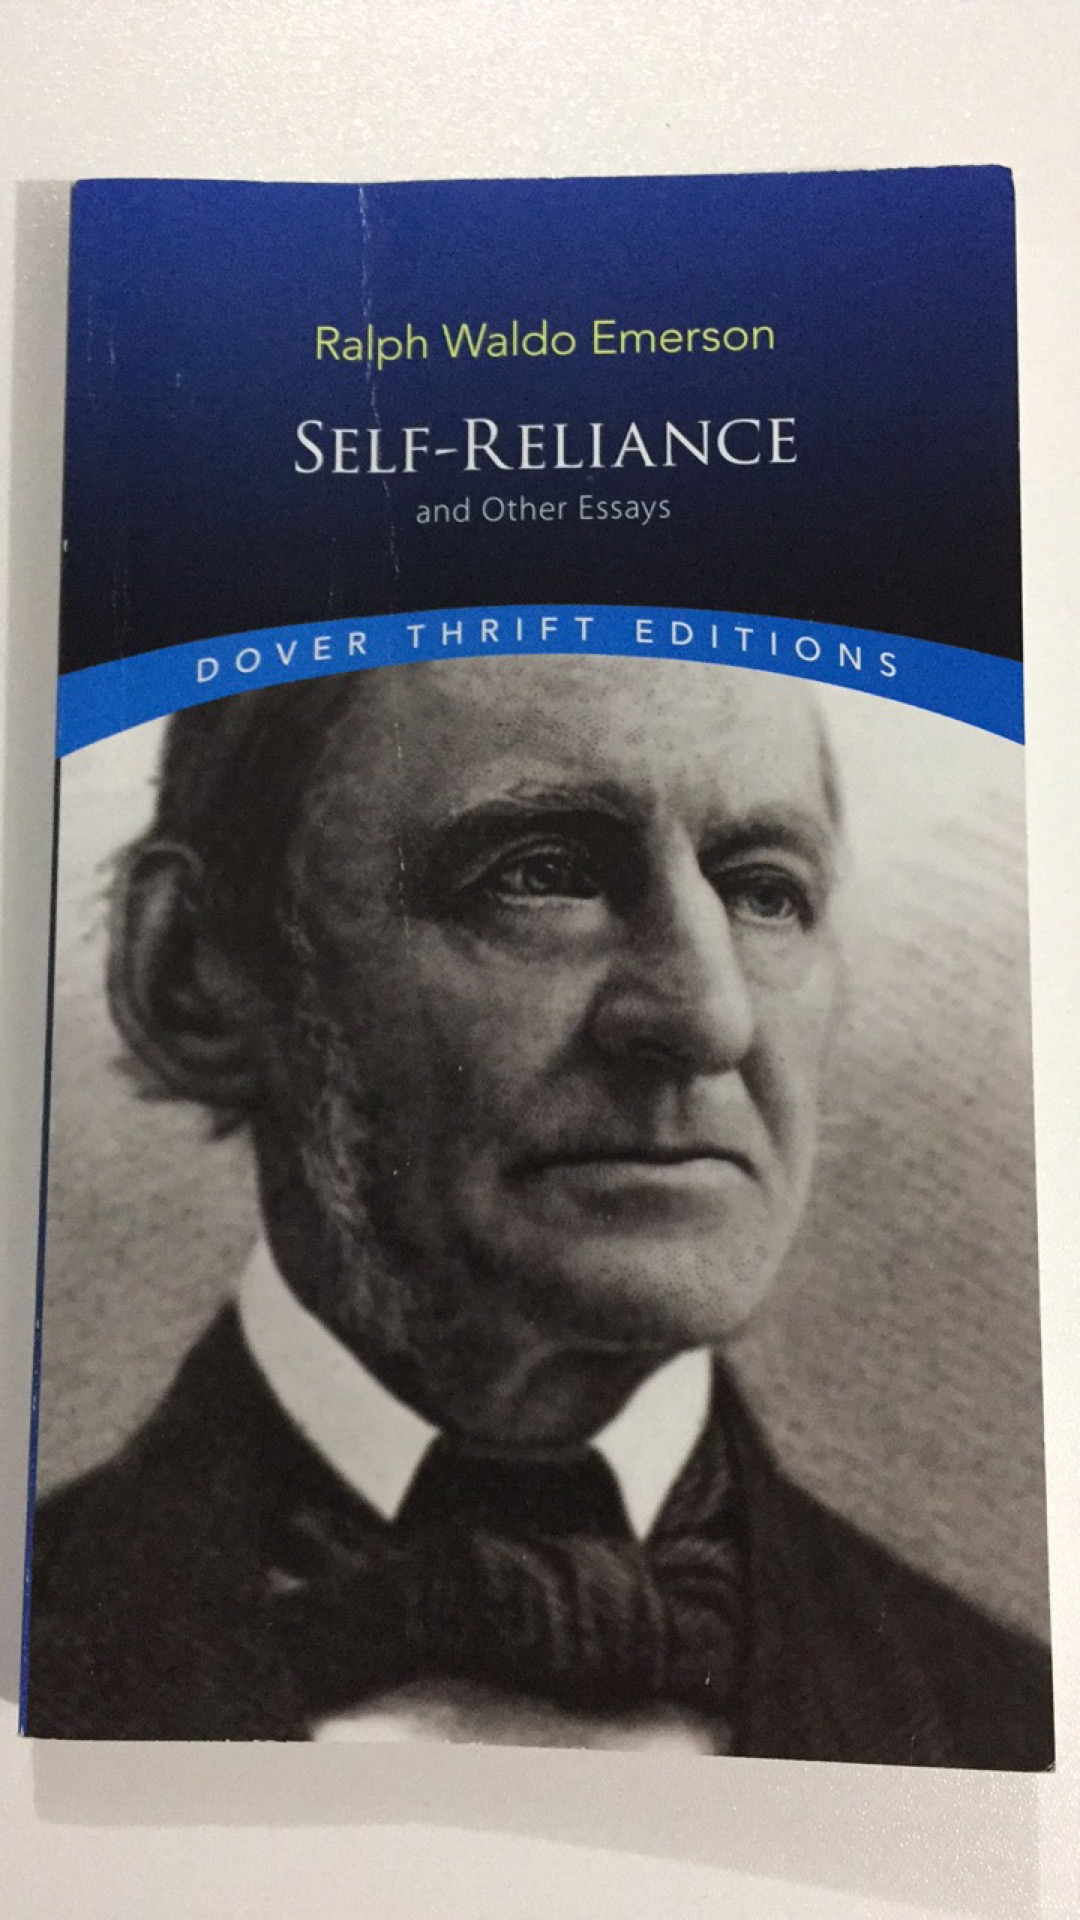 003 Self Reliance And Other Essays Essay Example By Ralph Waldo Emerson Formidable Ekşi Self-reliance (dover Thrift Editions) Pdf Epub Full